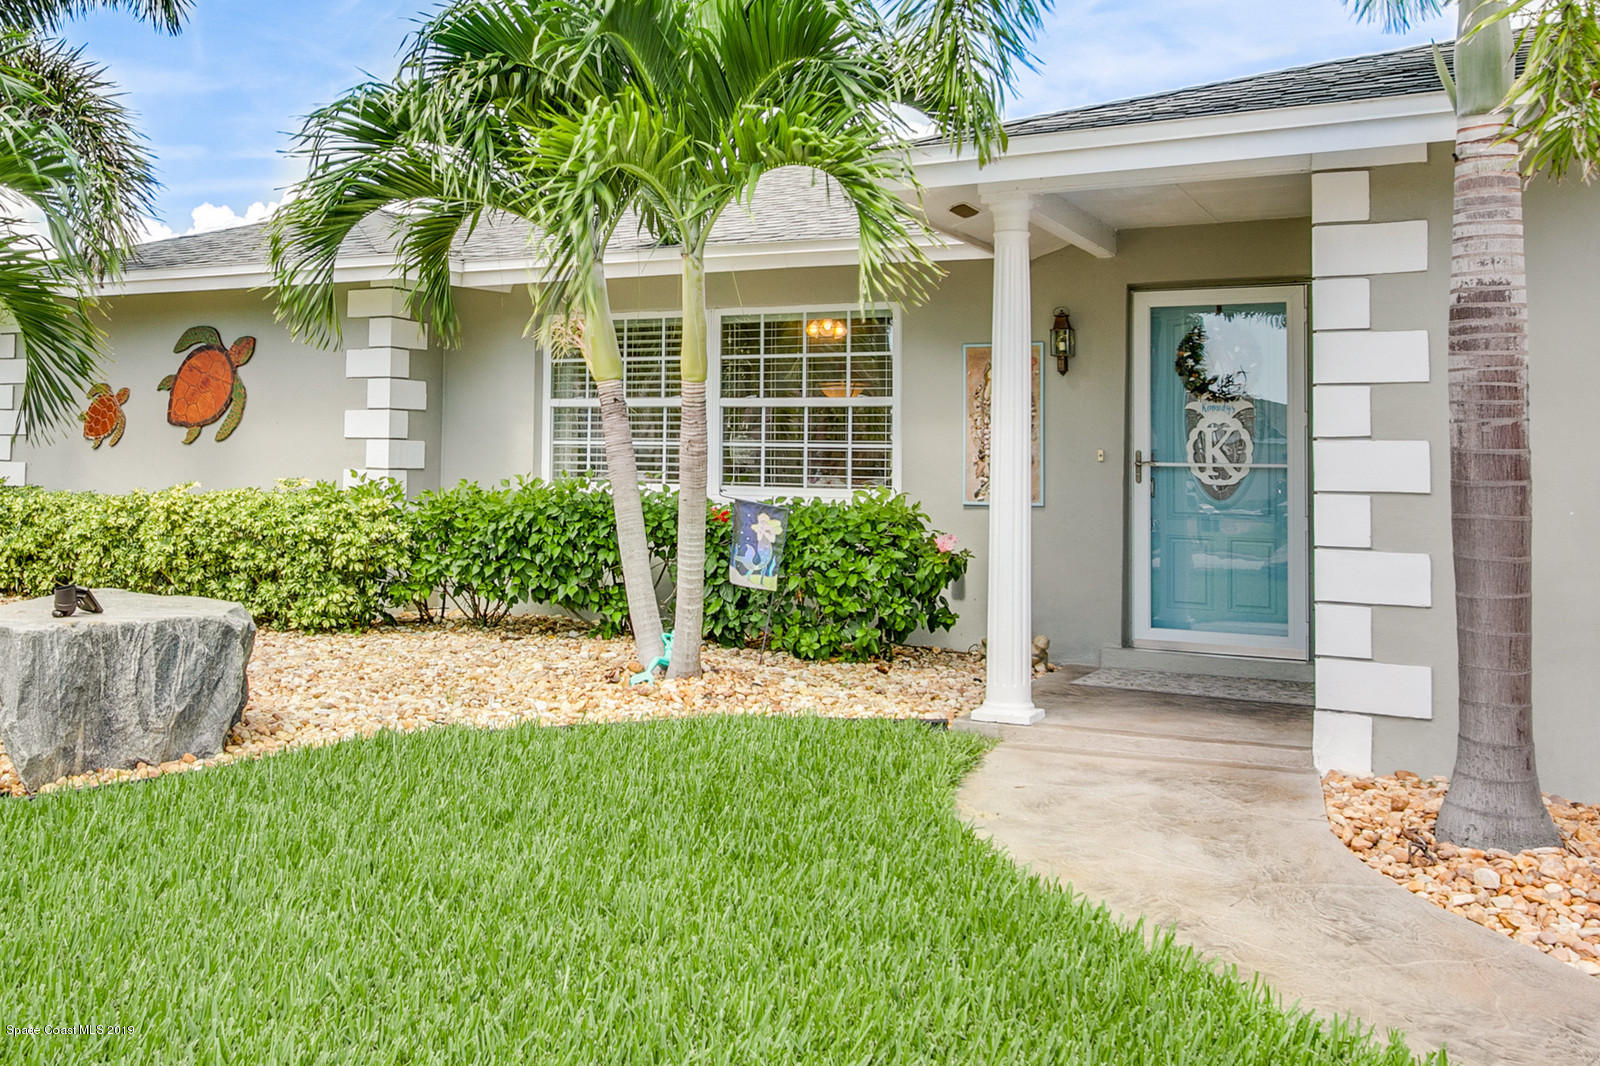 Single Family Homes for Sale at 1365 Cepheus Merritt Island, Florida 32953 United States